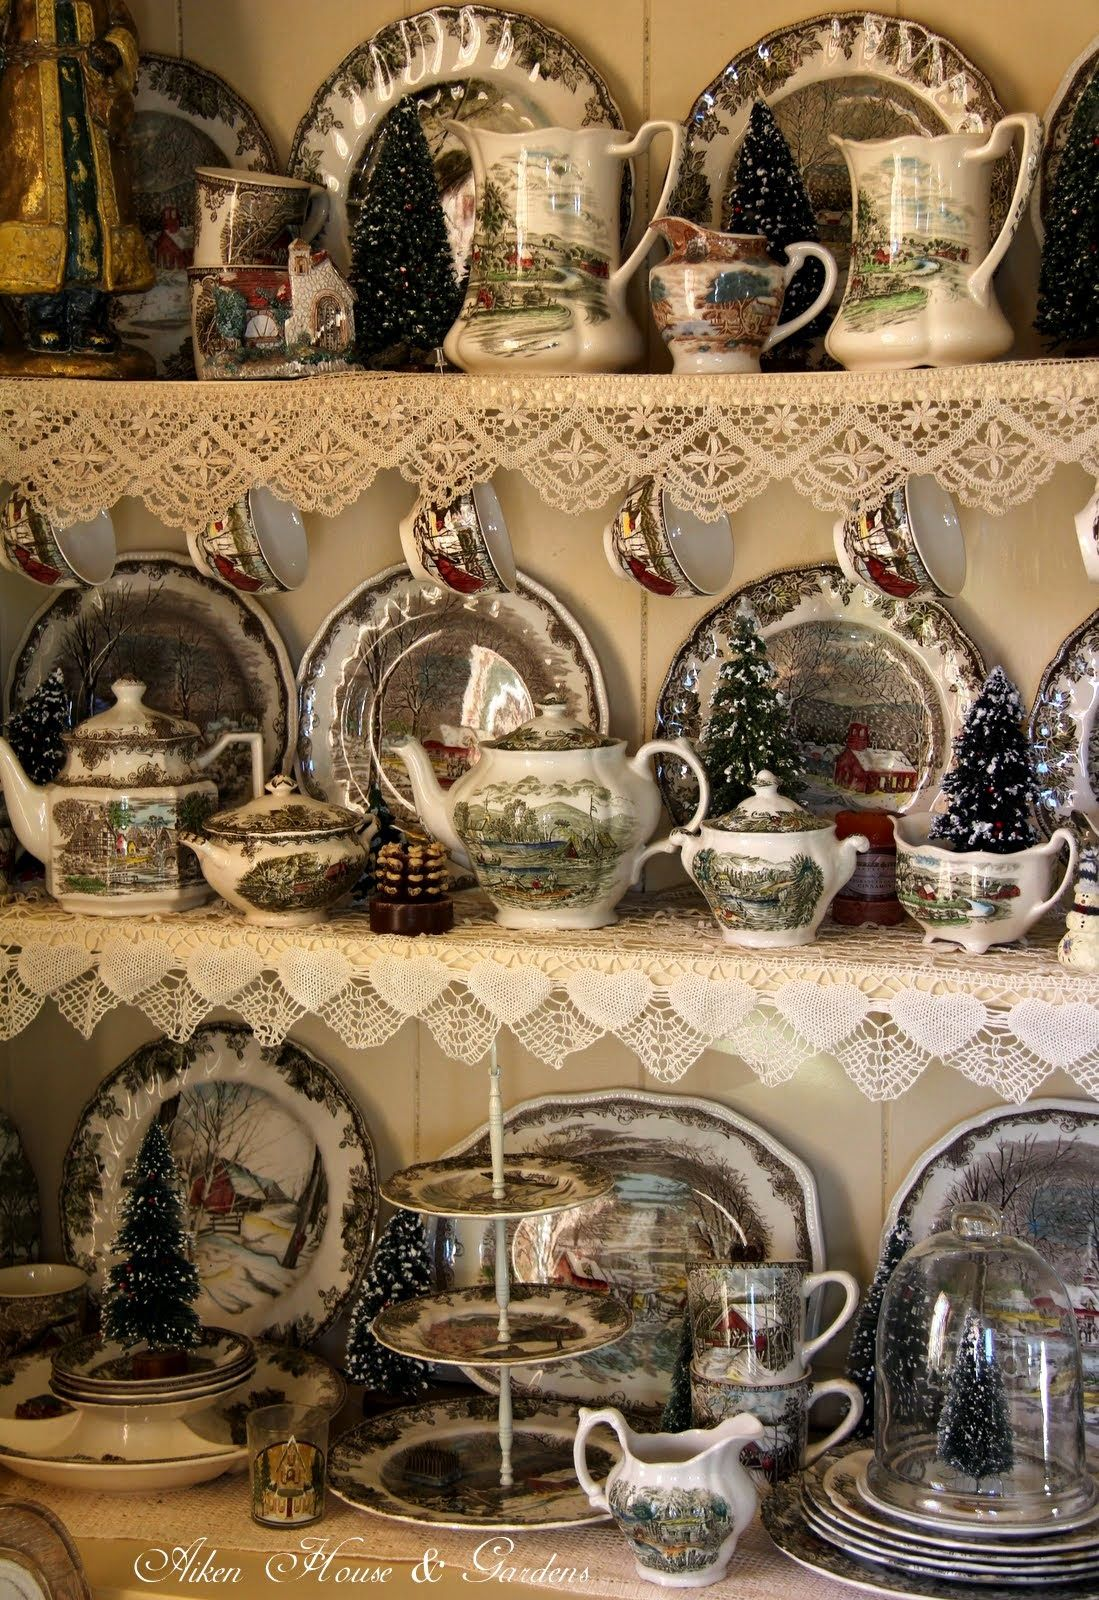 Friendly Village Dish display, Christmas china